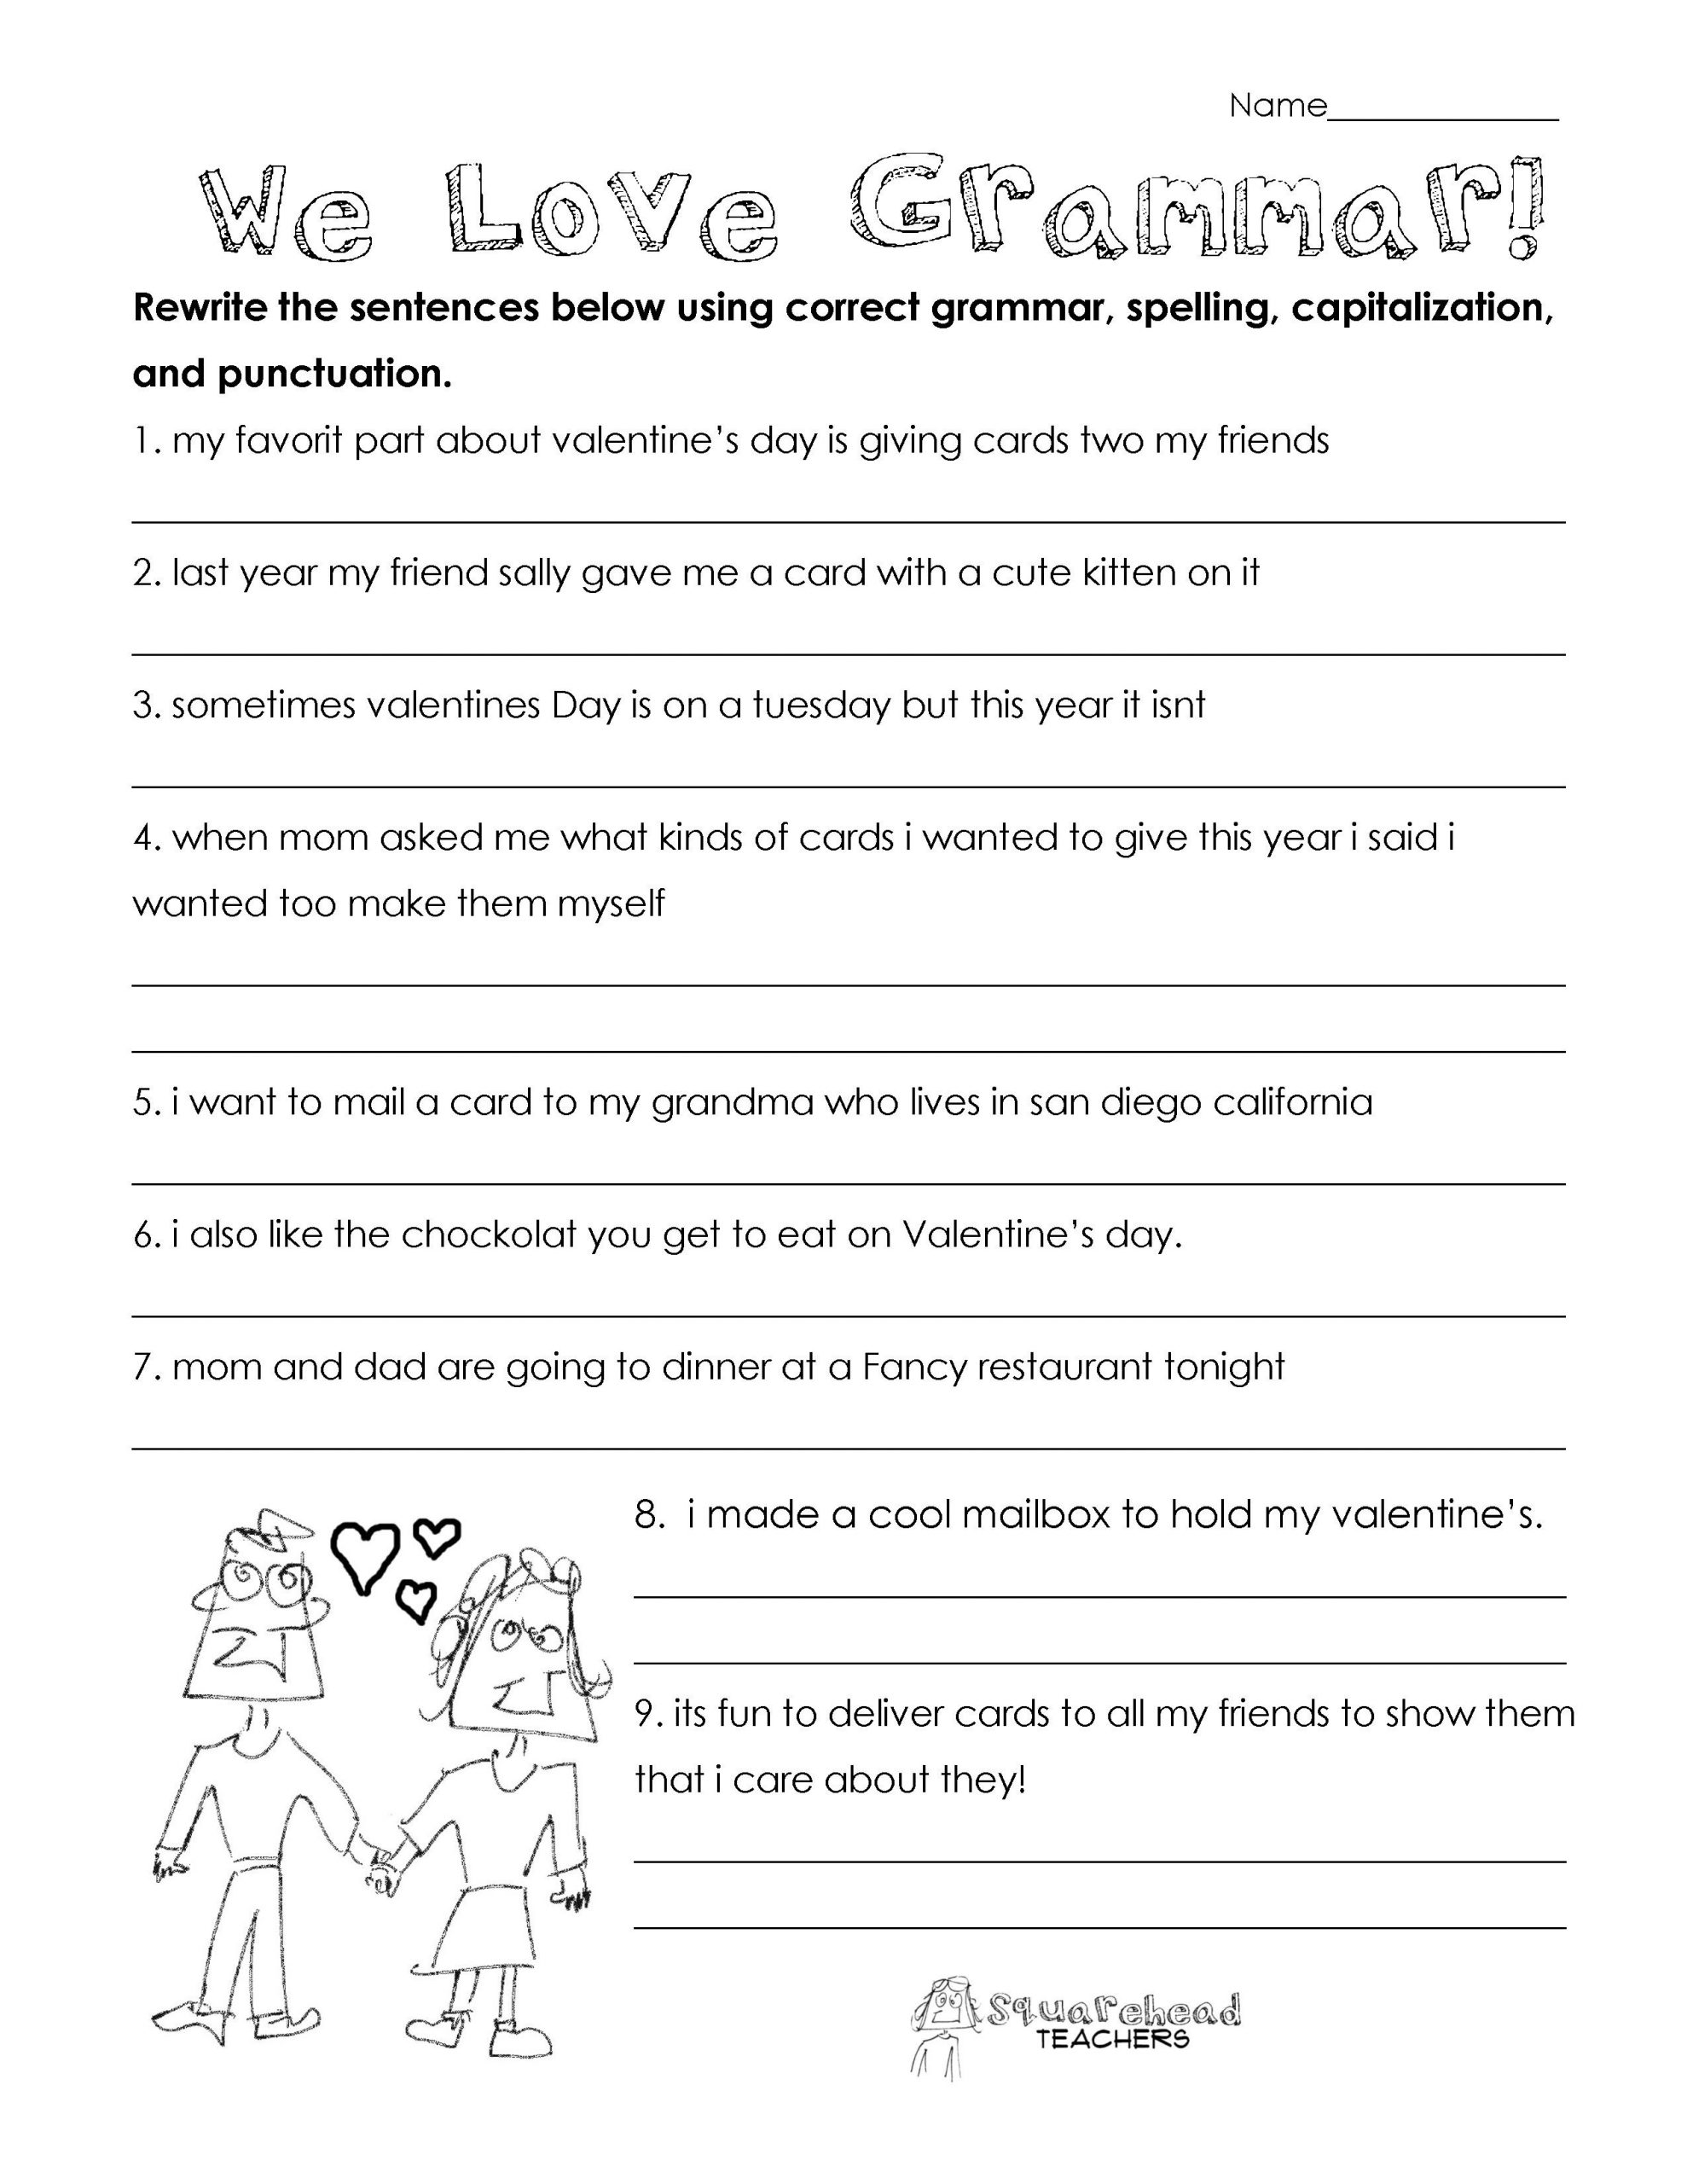 Punctuation Worksheets 5th Grade Valentine S Day Grammar Free Worksheet for 3rd Grade and Up